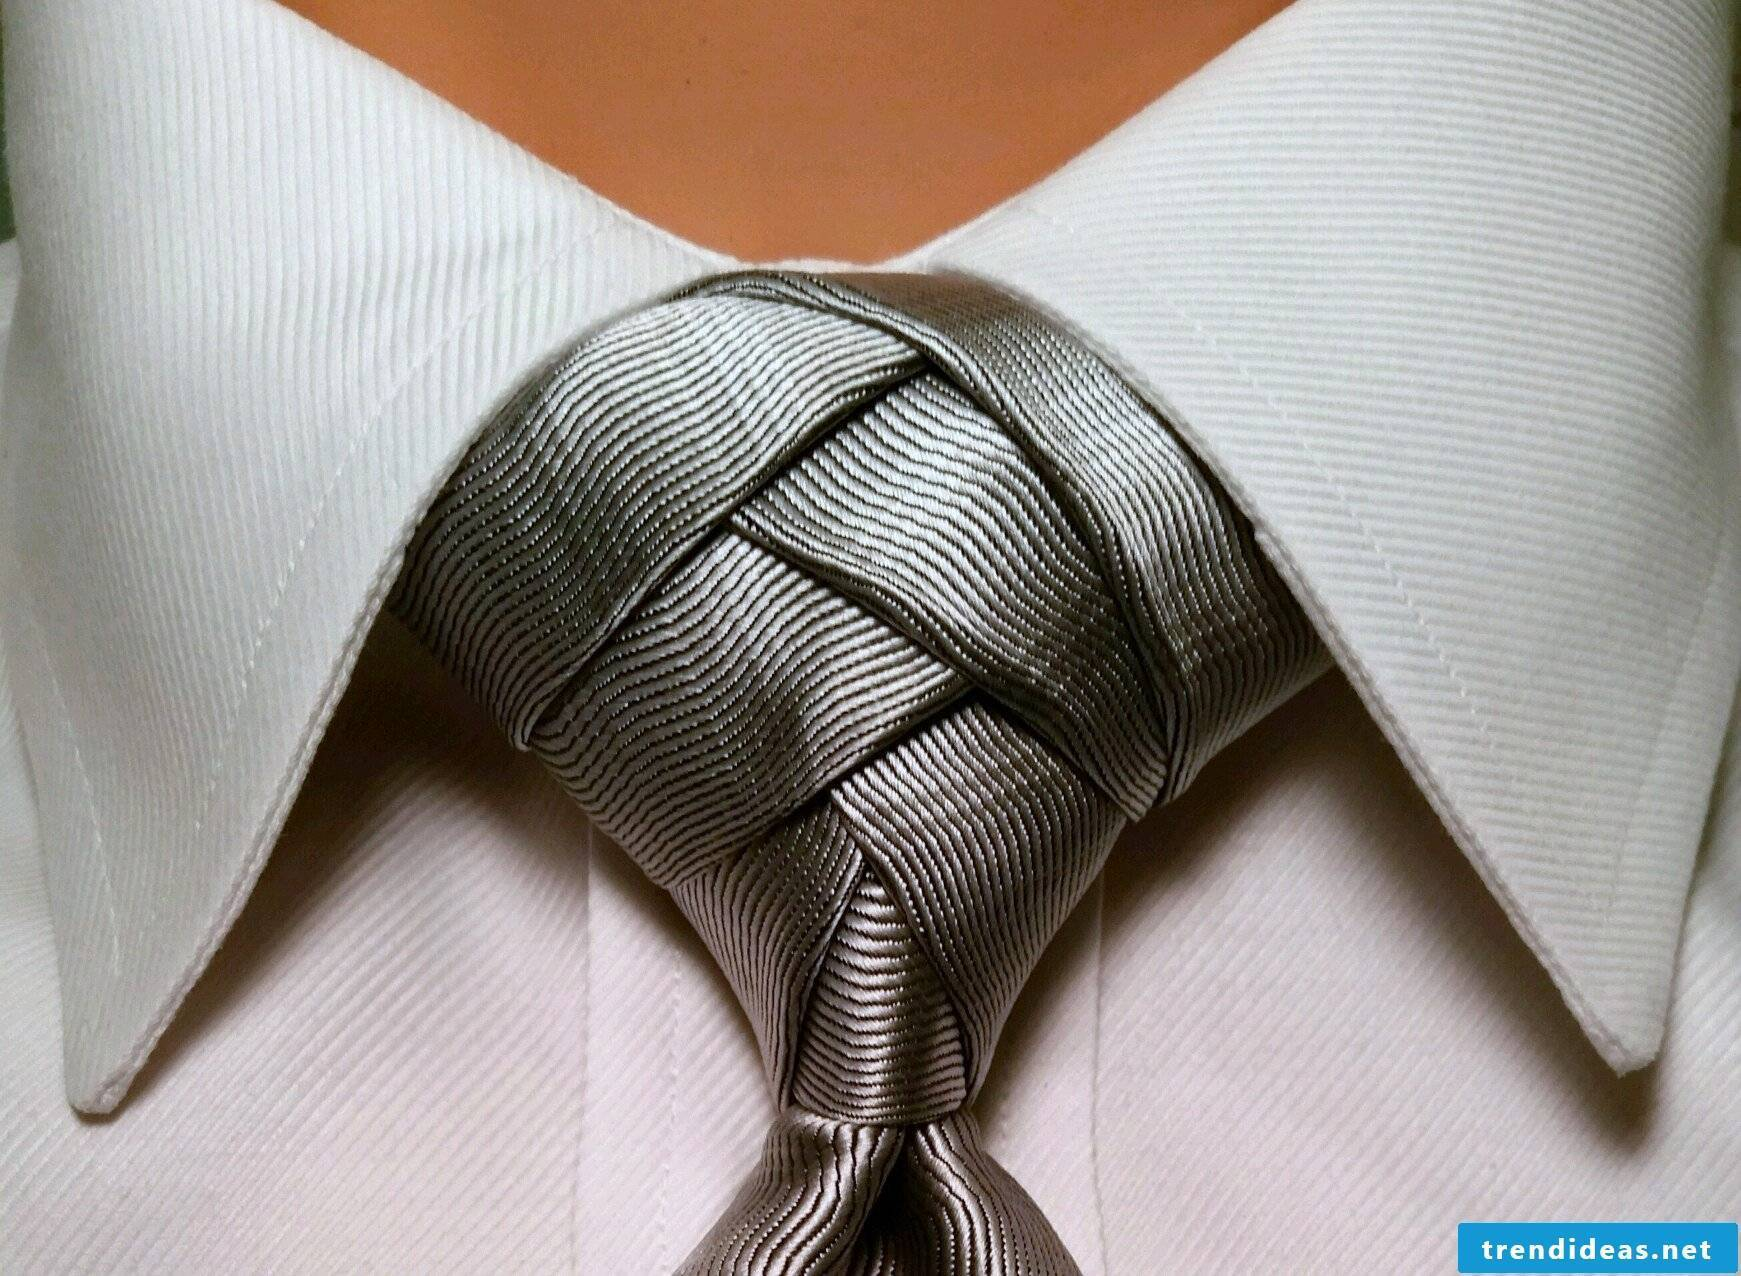 Instructions for unique tie knots can be found here!